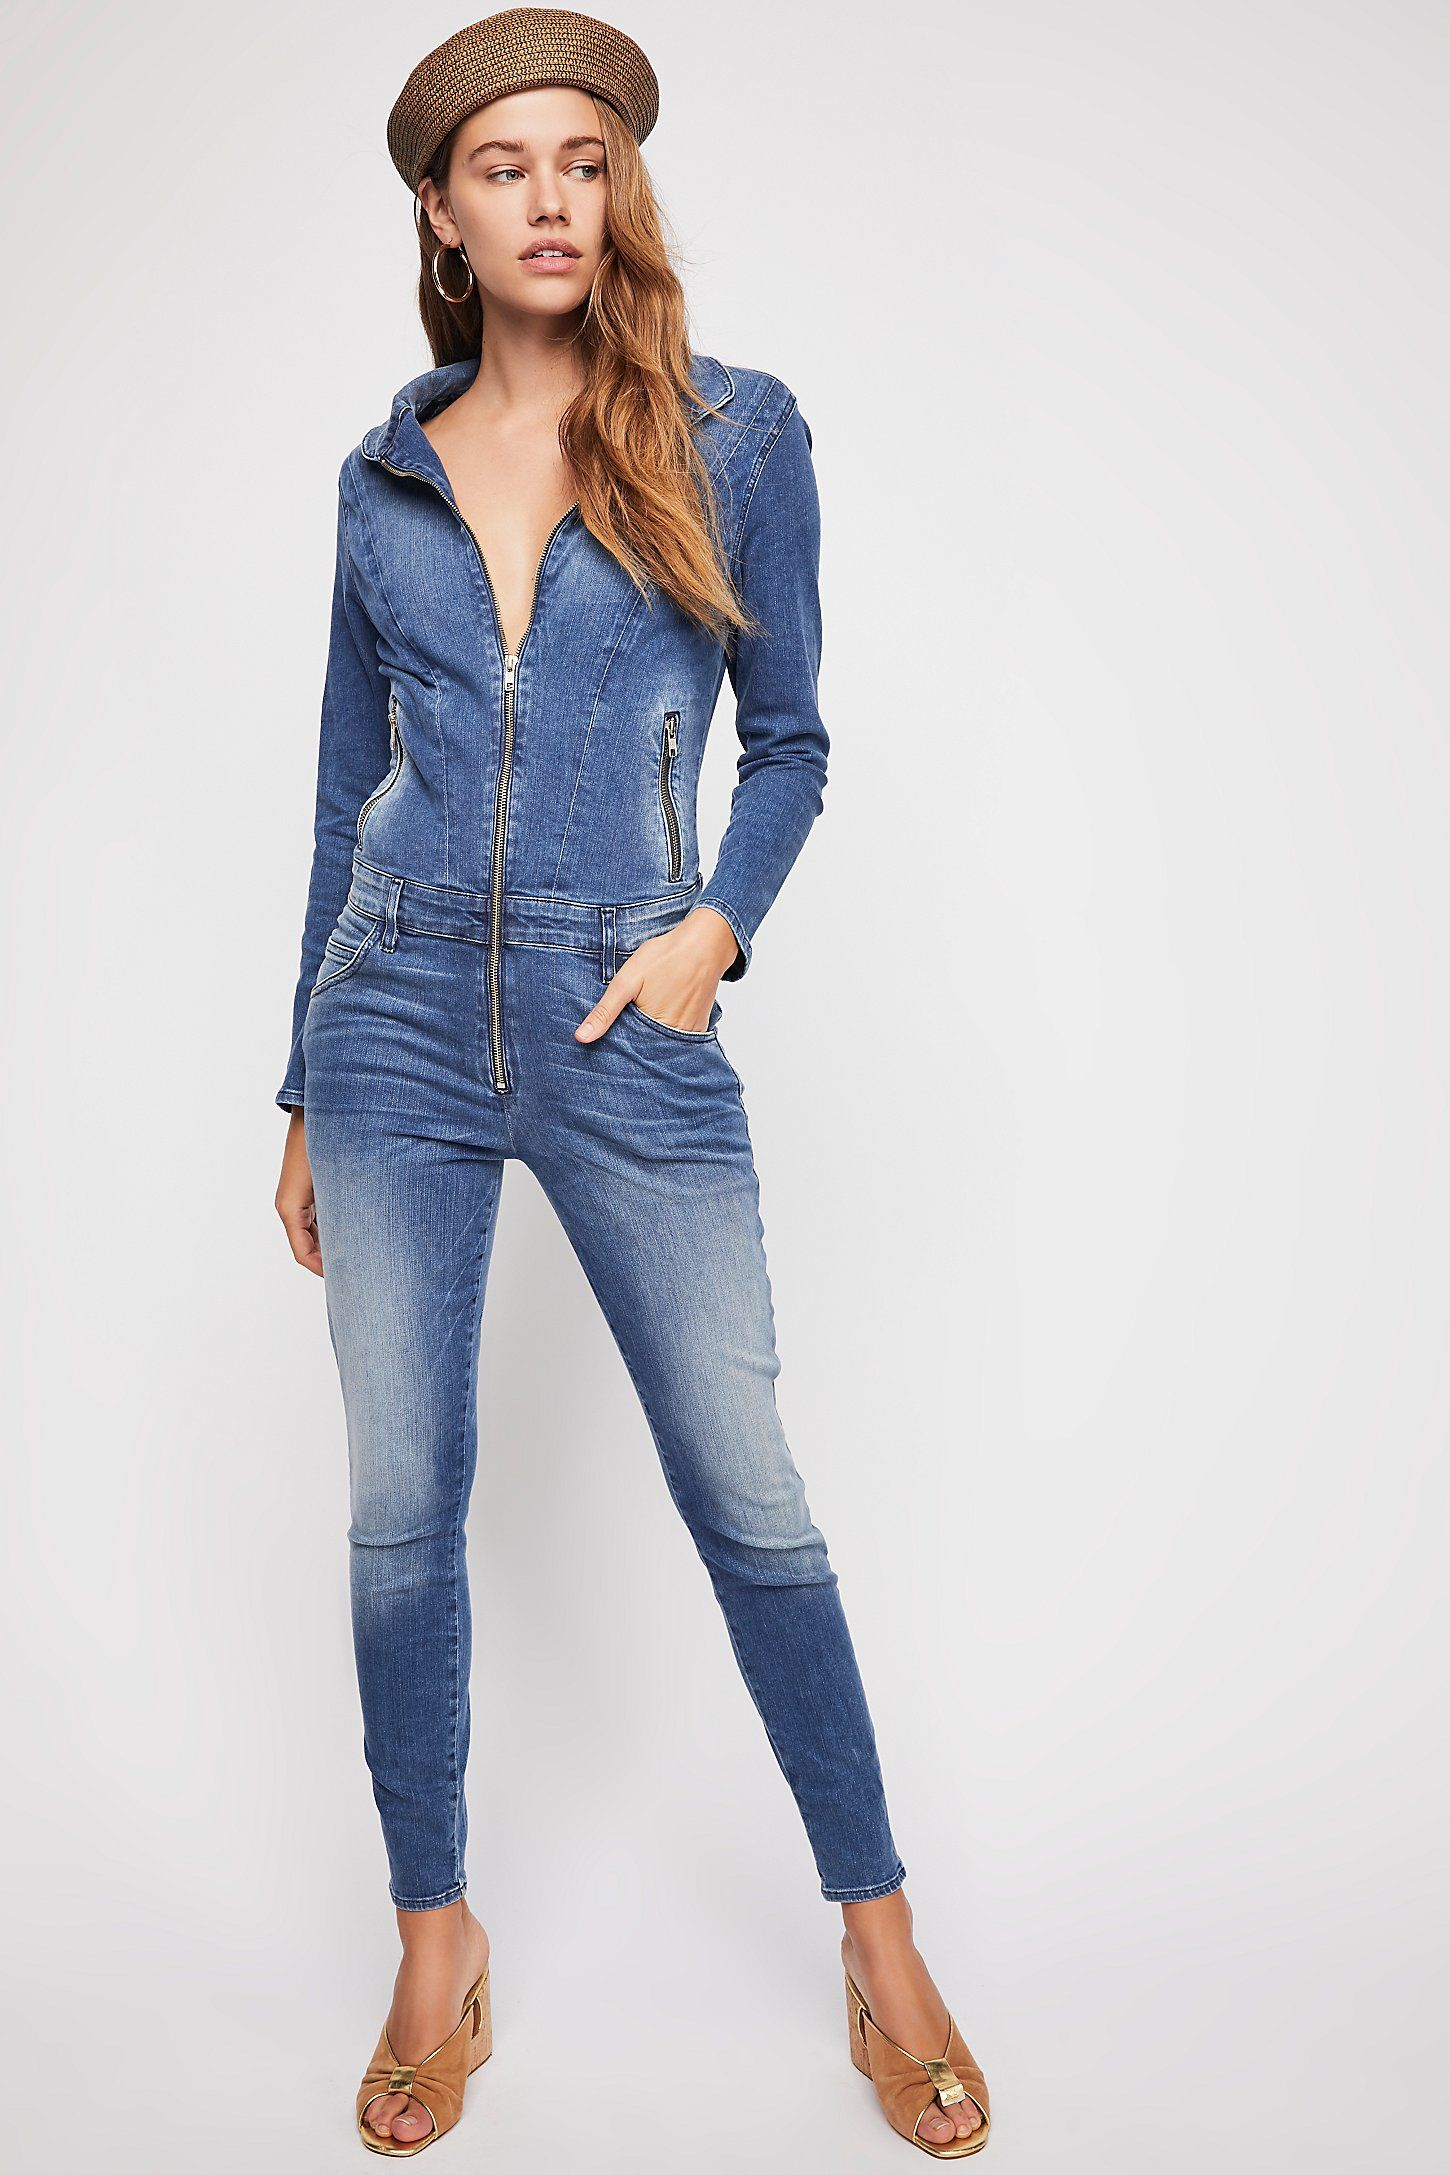 0978ab7340b1 Etienne Marcel Long Sleeve Jumpsuit